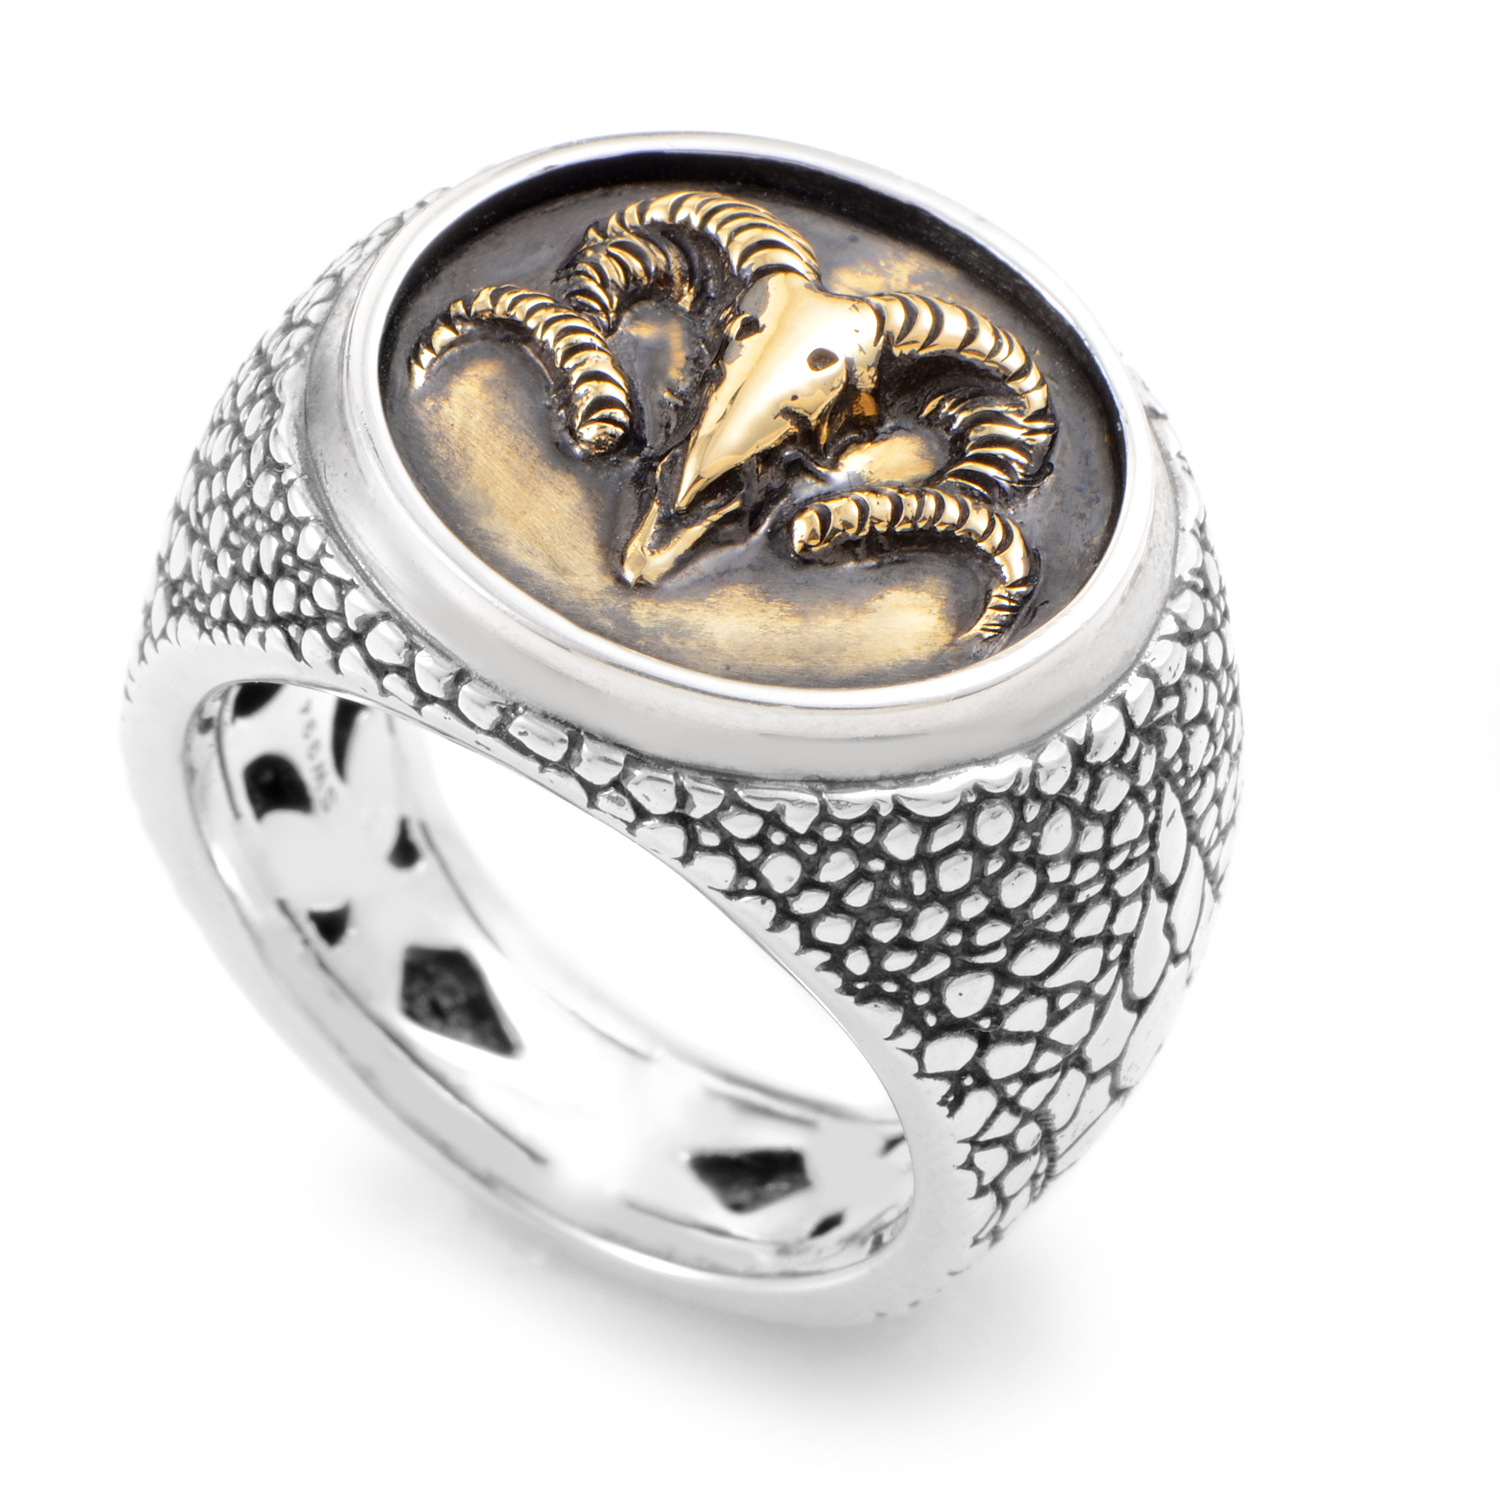 Sterling Silver & 18K Yellow Gold Ram's Head Coin Ring